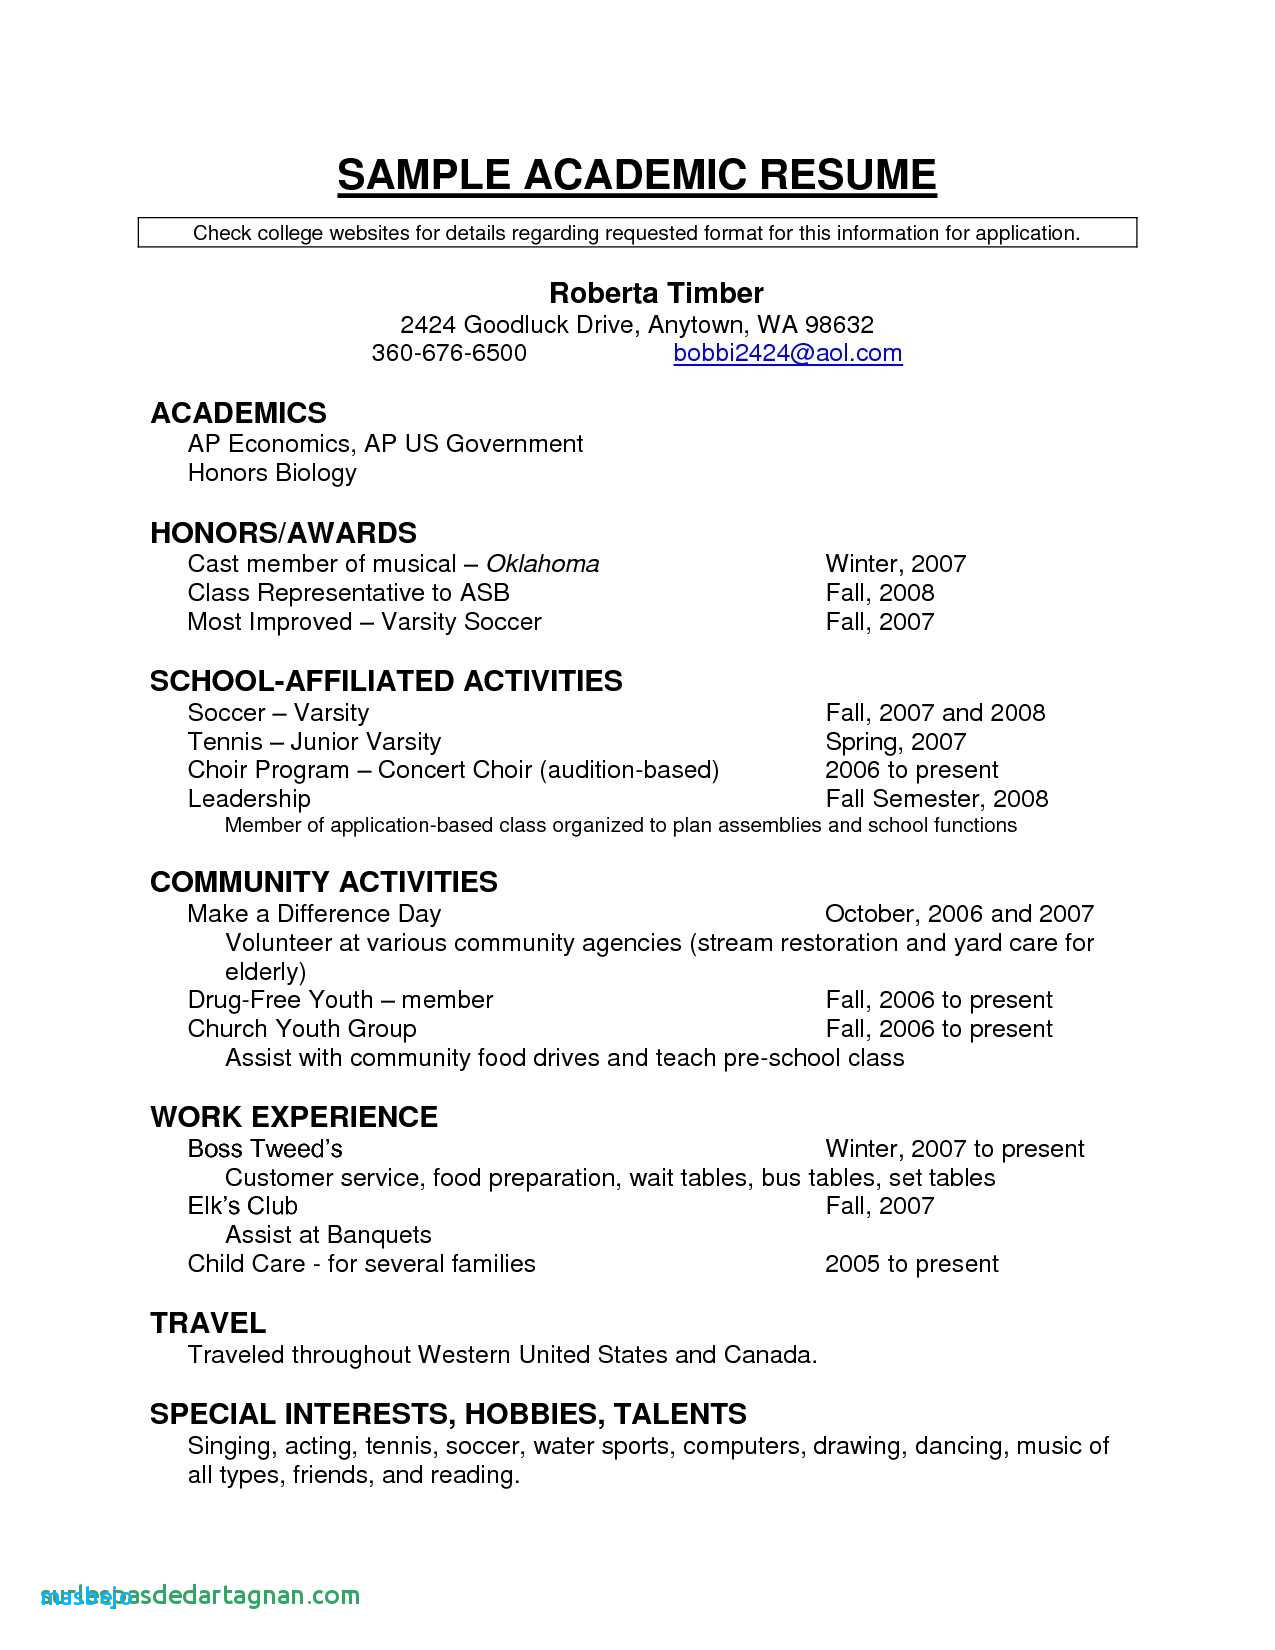 soccer resume template example-puter Resume Examples Unique Resume For Highschool Students Excellent Resumes 0d High 6-t